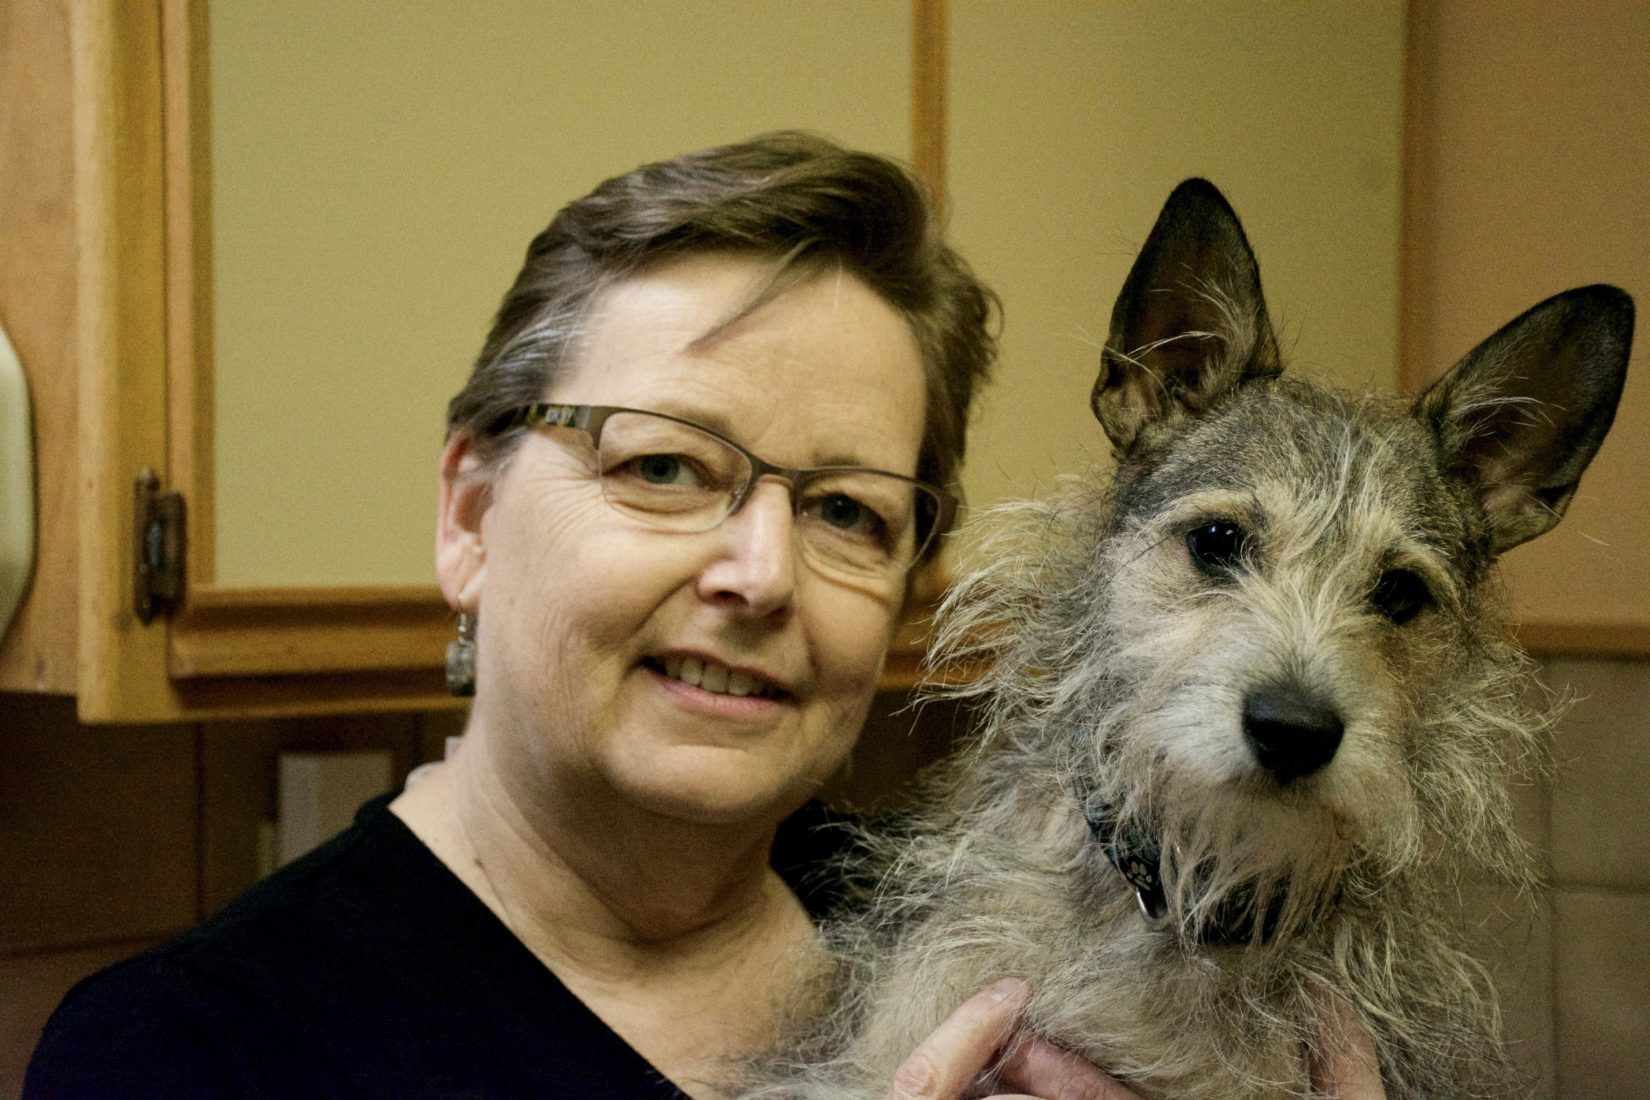 Dr. Holly Tillotson poses with a dog for a photo